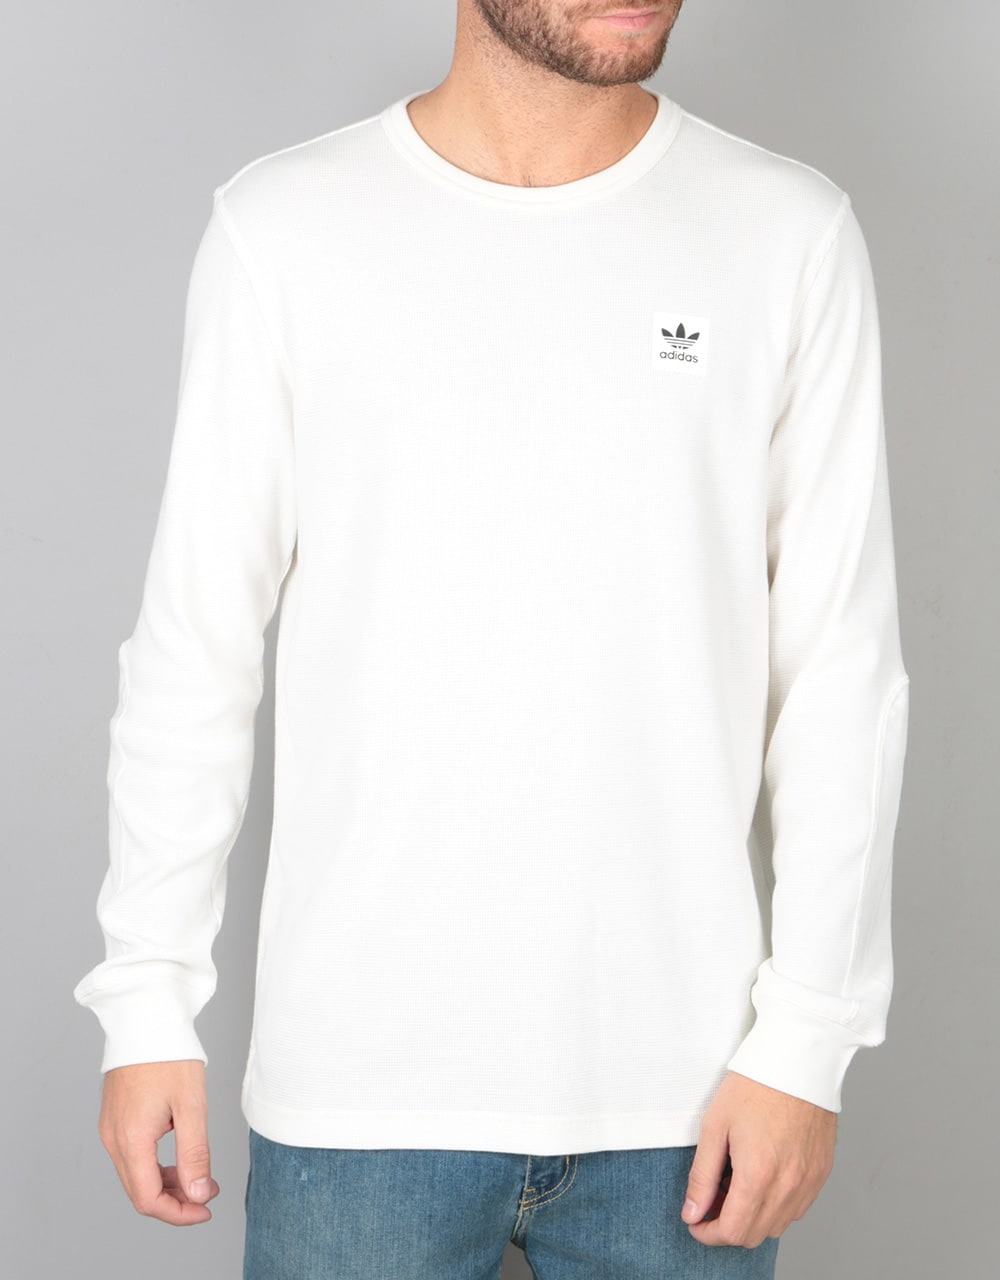 Adidas thermal l s t shirt off white skate t shirts for White thermal t shirt